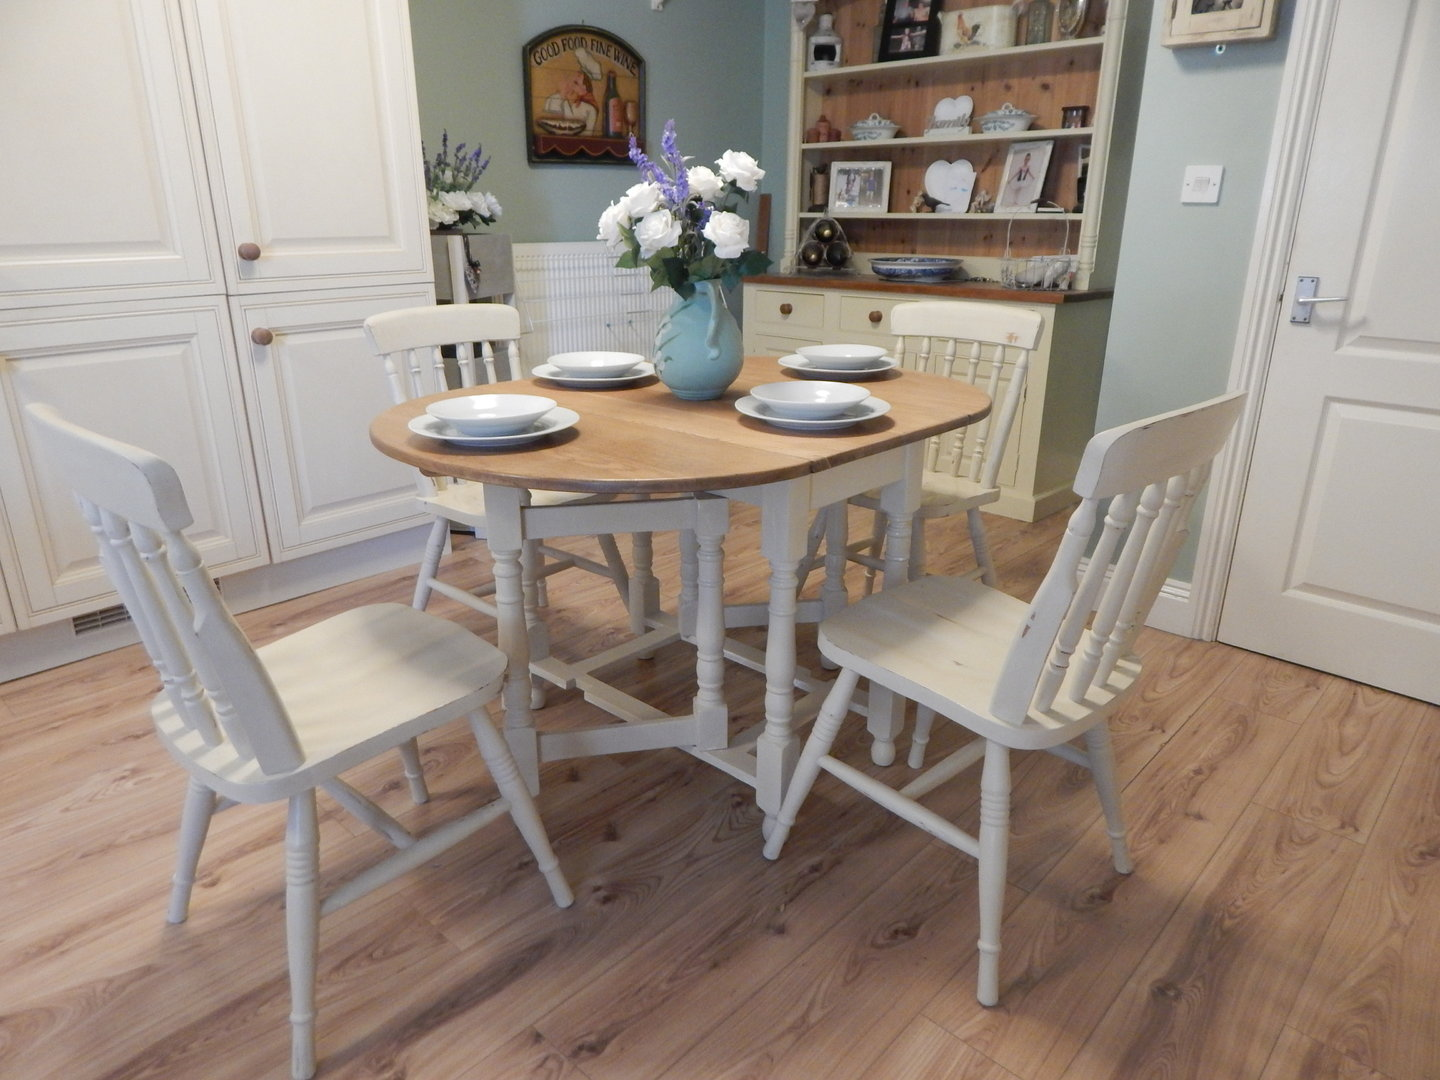 Shabby chic gate leg dining table 4 chairs vintage solid oak sold moonstripe - Shabby chic dining table sets ...